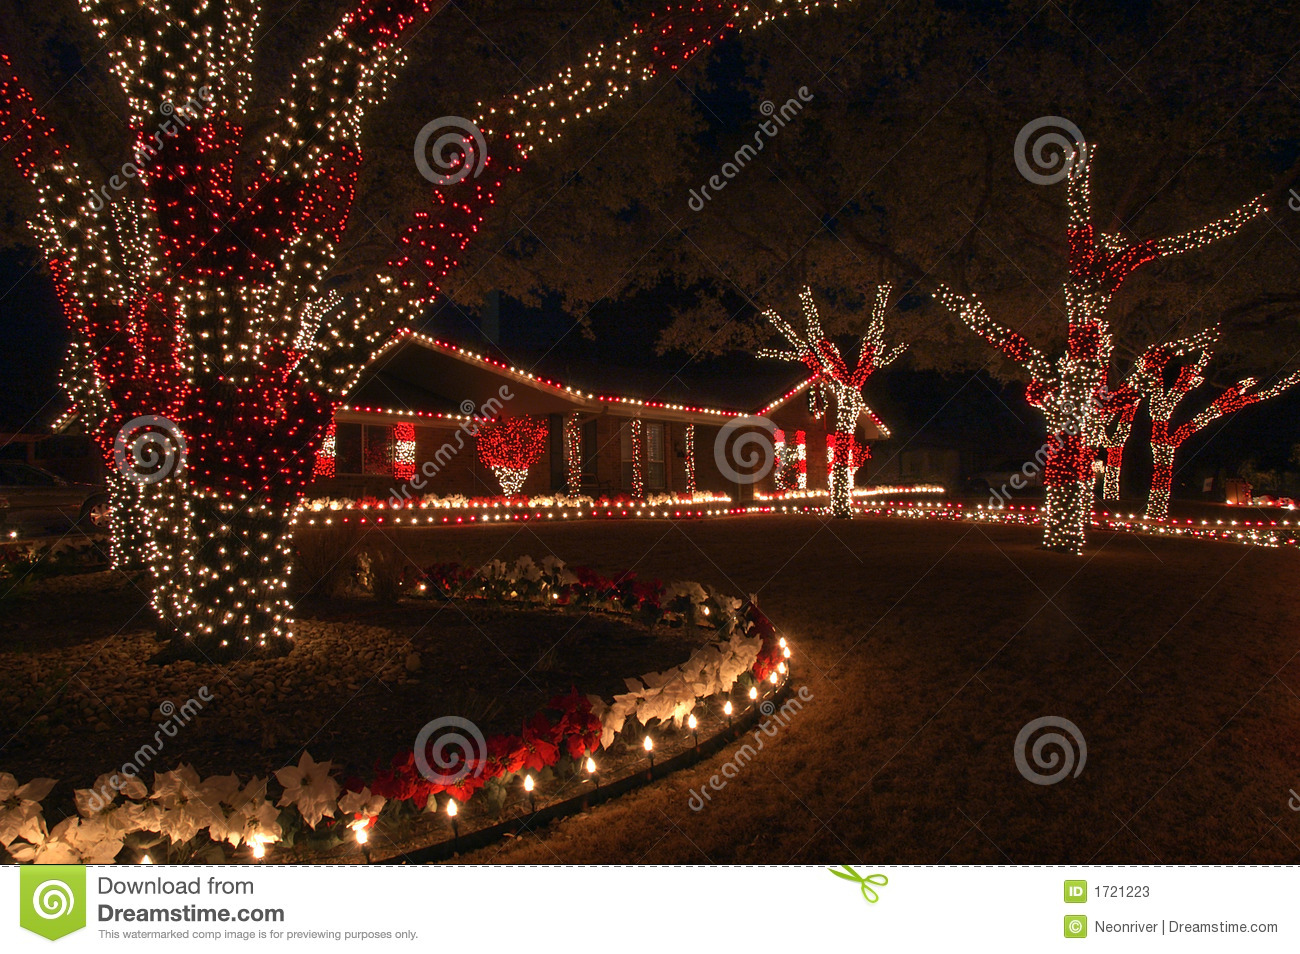 Red And White Christmas Lights Stock Image - Image: 1721223